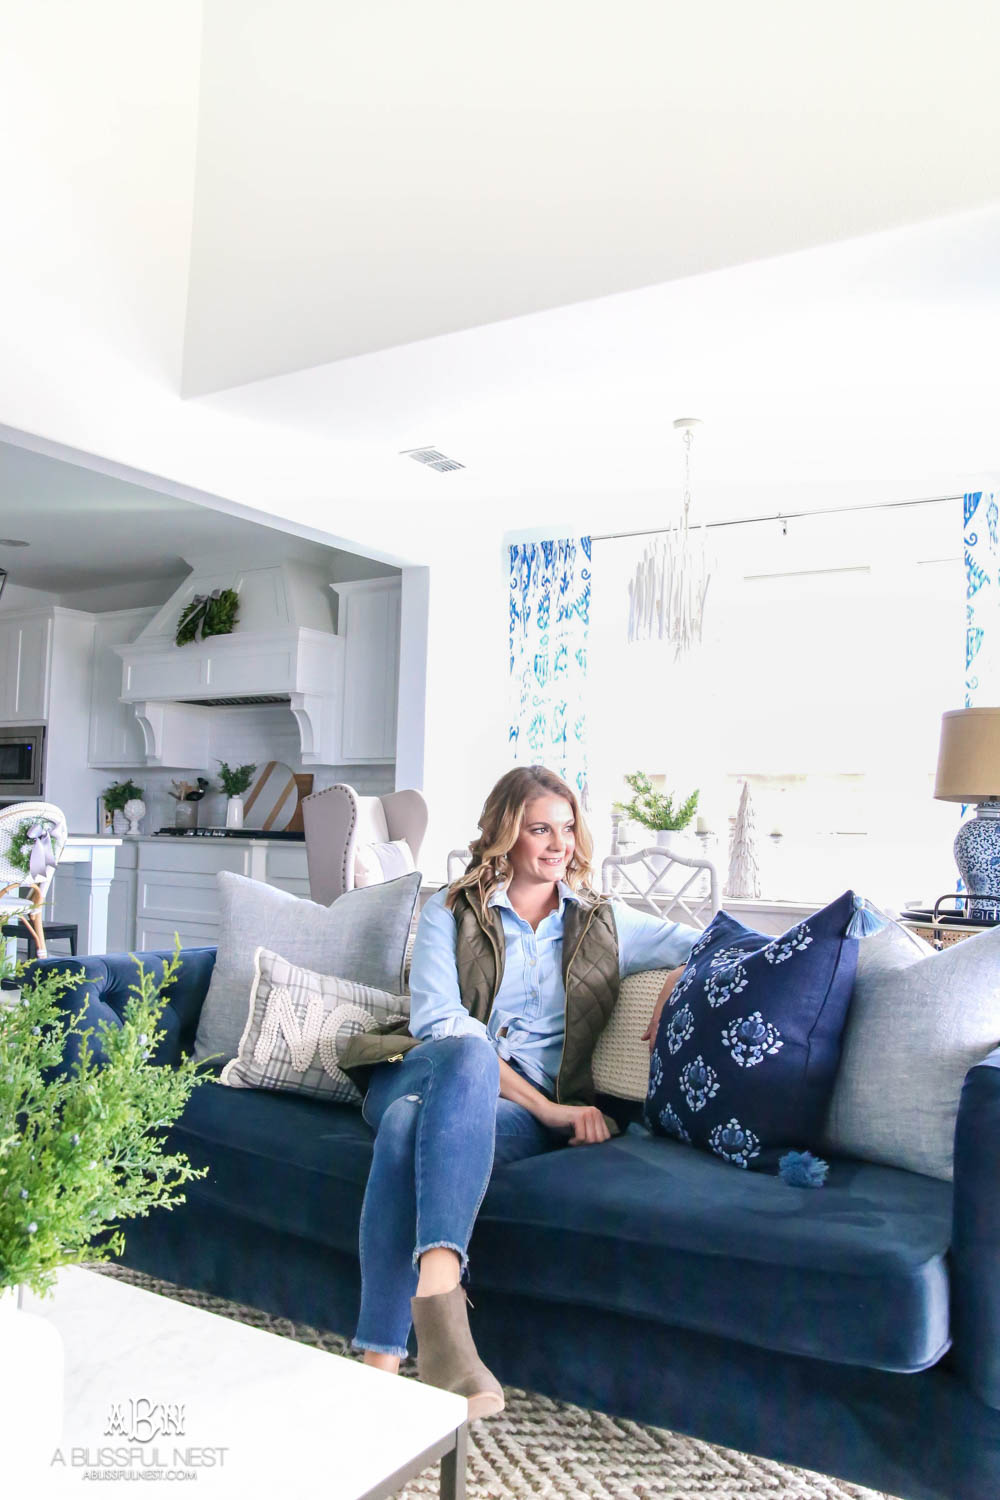 It can be hard to set goals for the New Year for your home but I've come up with easy tips to set New Year's Resolutions for your home you can stick to! #ad #opendoor #newyears